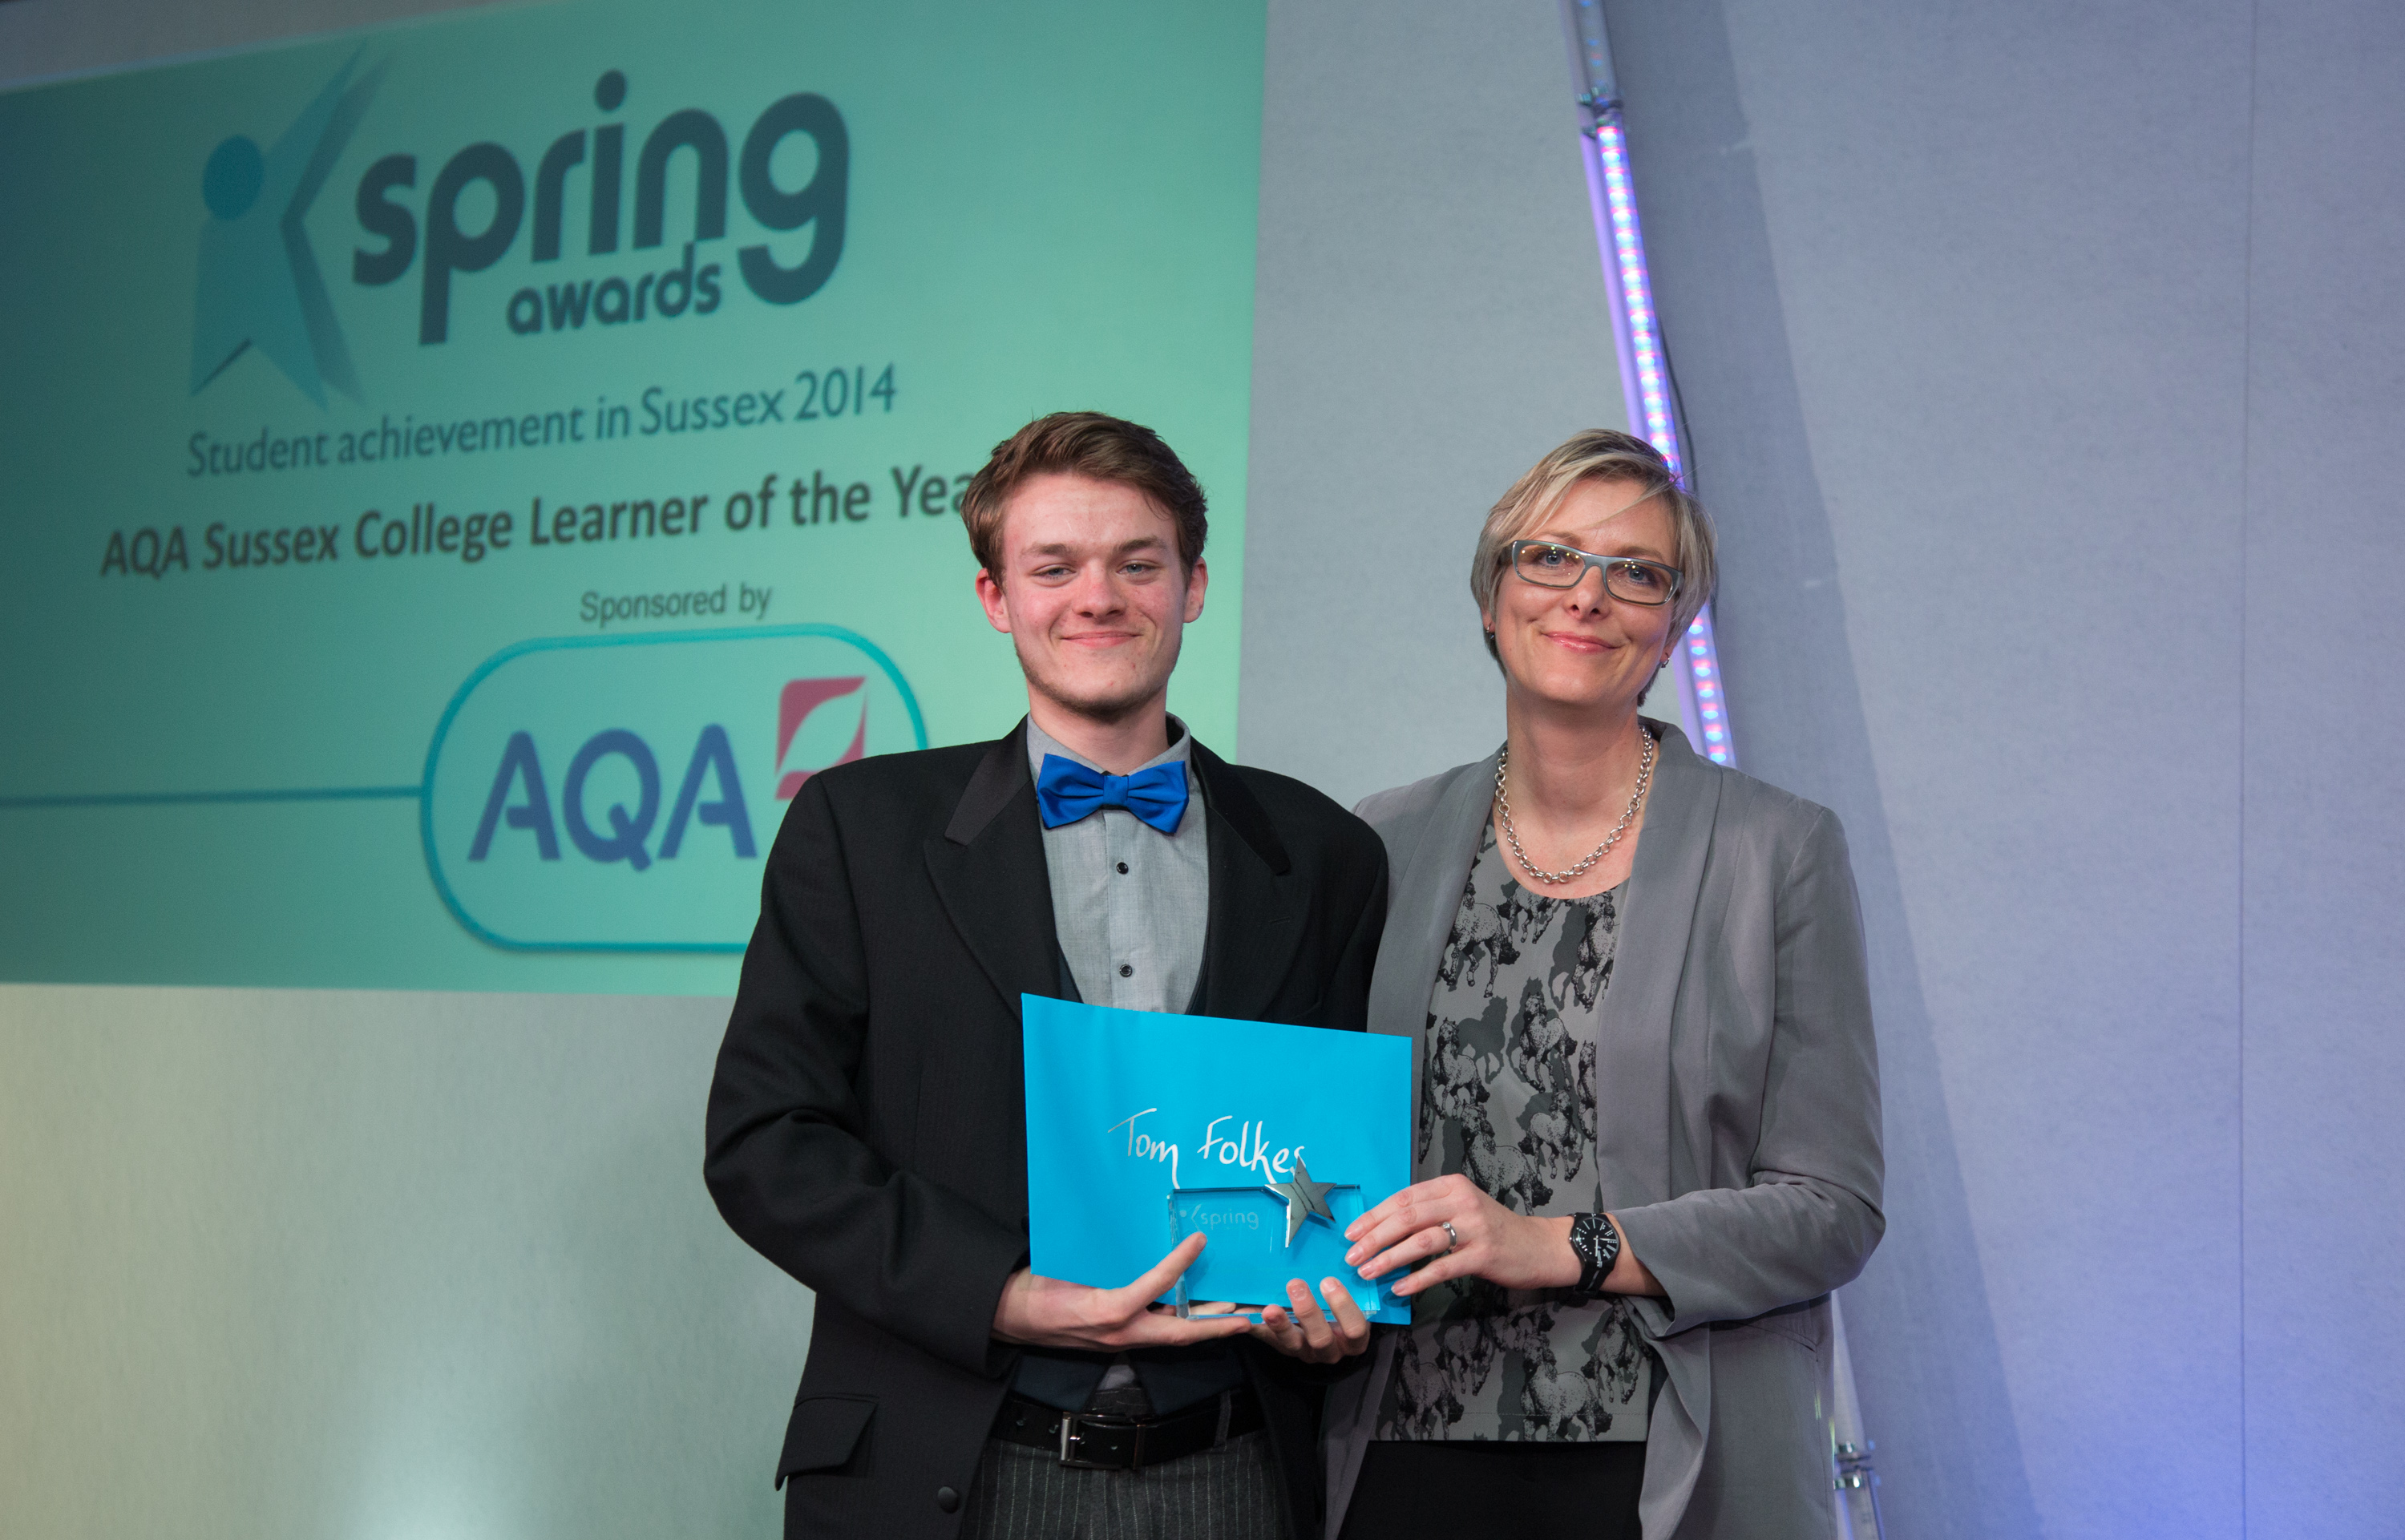 FE-Sussex-2014-Awards-7151.jpg